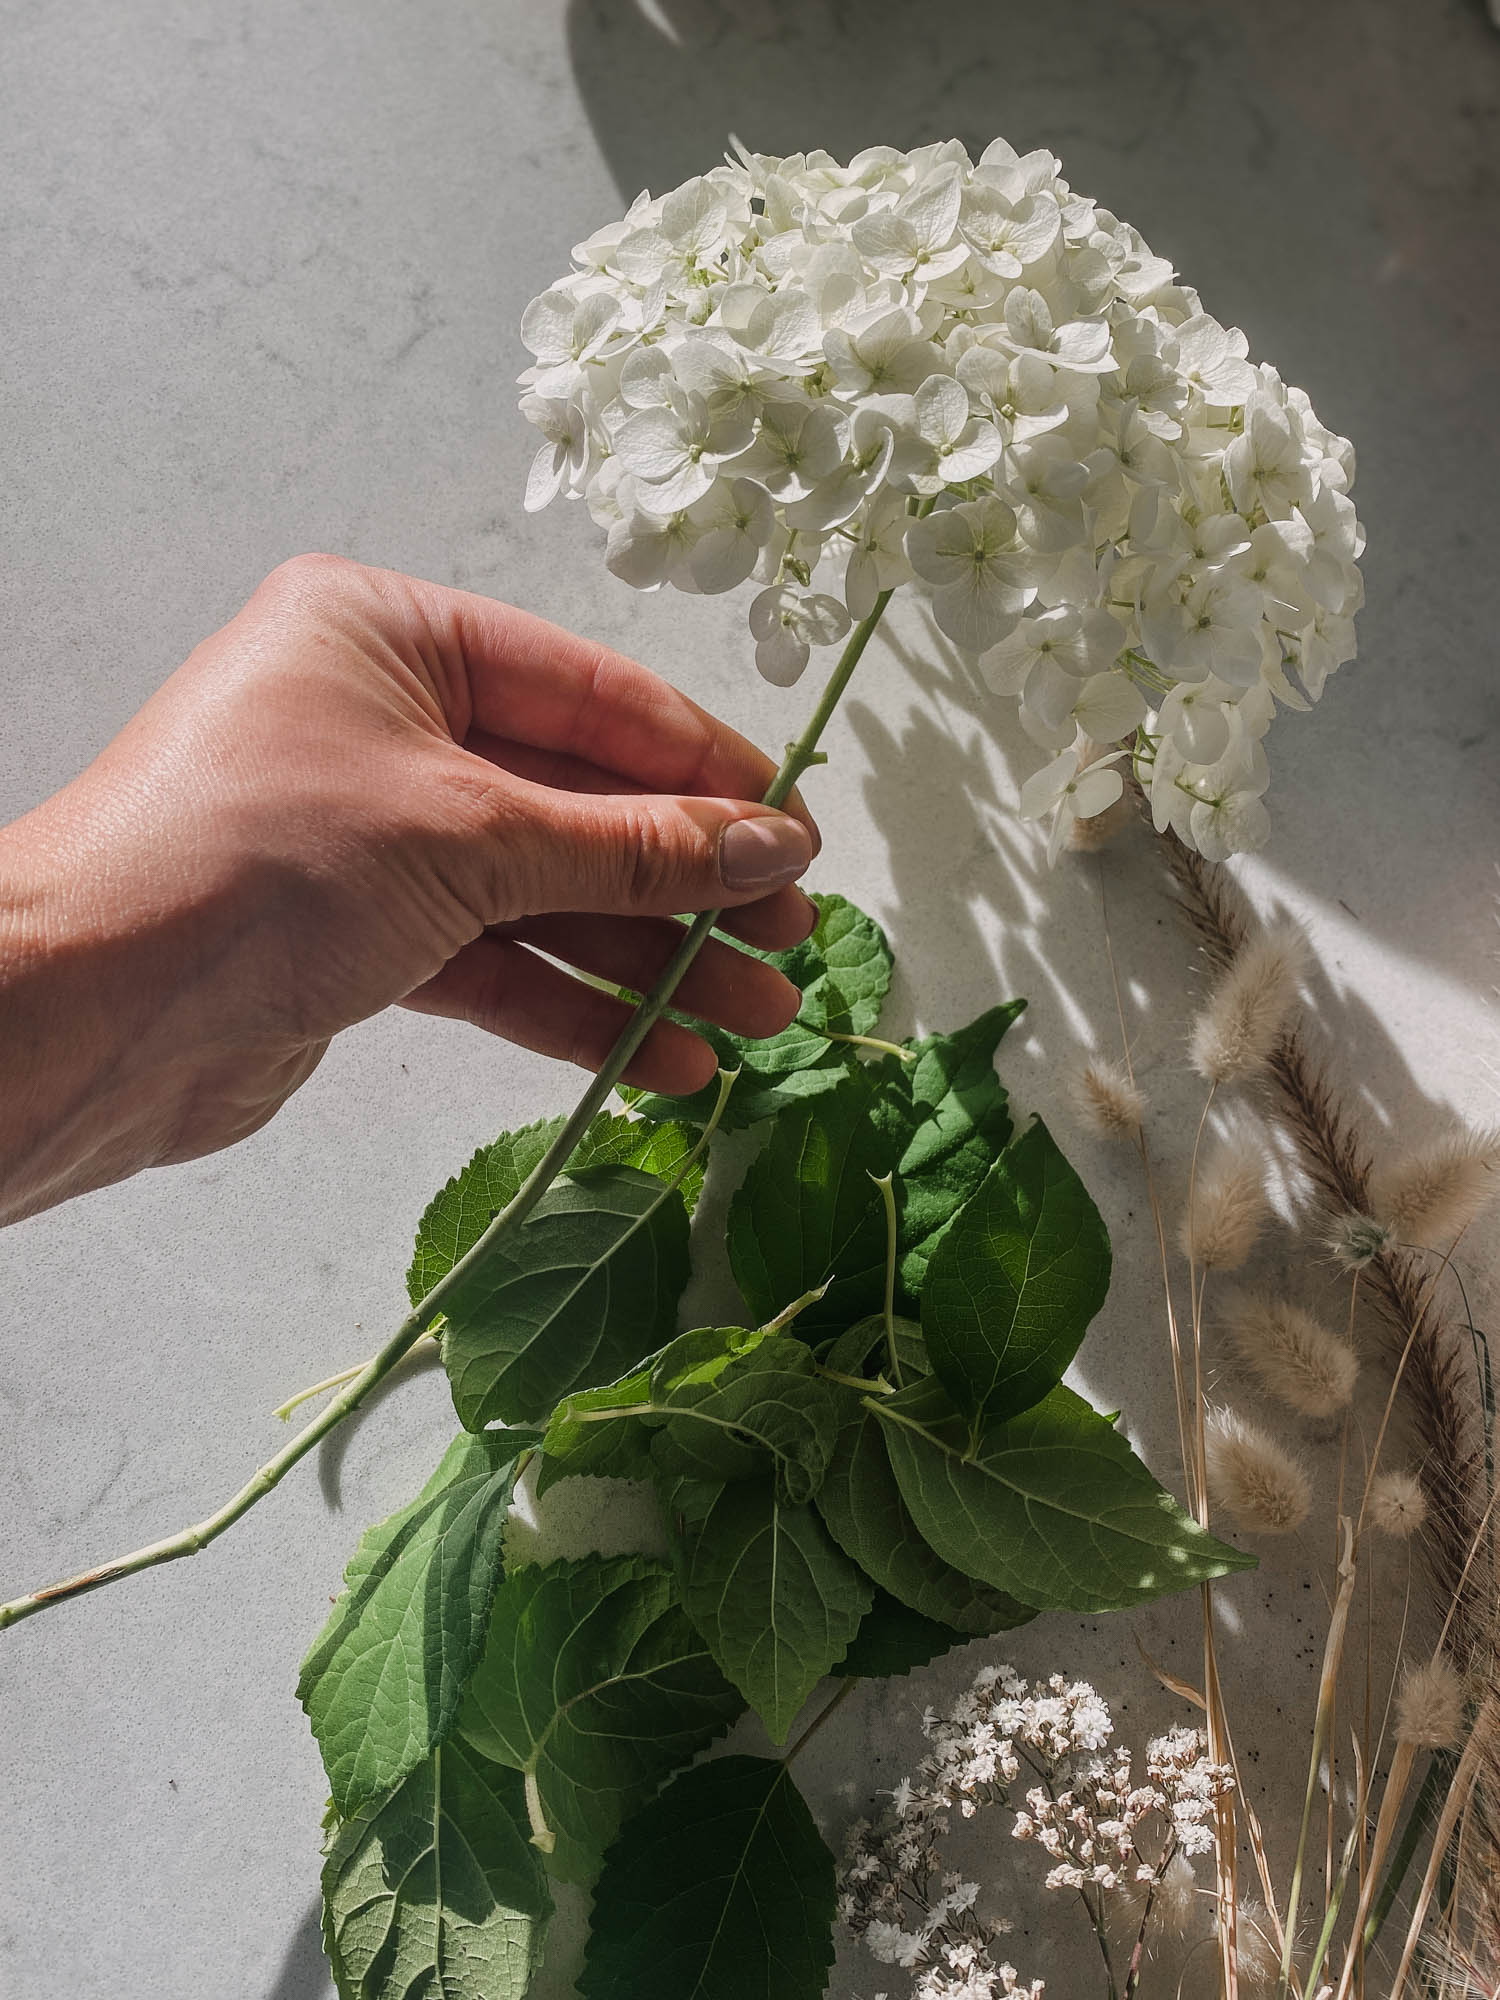 Remove leaves before drying cut flowers